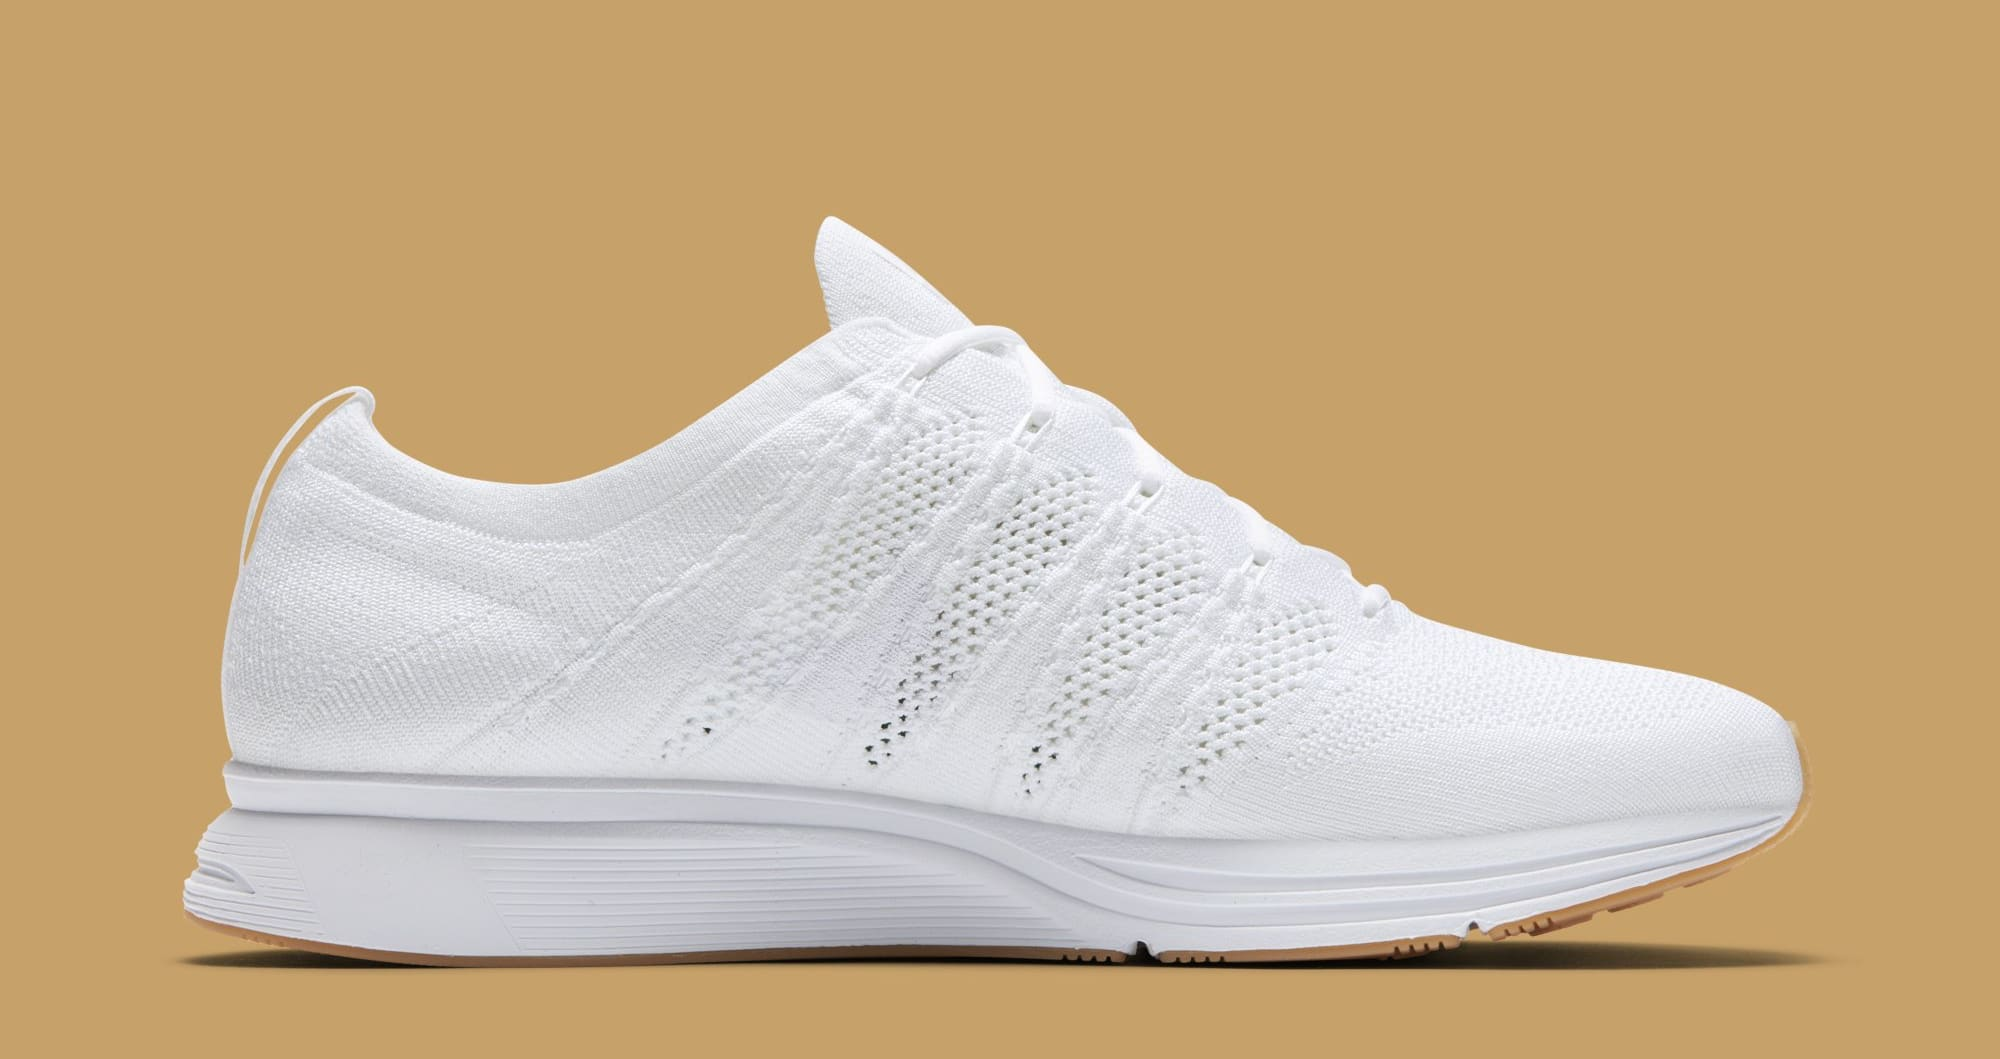 sports shoes 9f0e5 459b5 3a0f4 8bfbb; authentic image via nike nike flyknit trainer whitegum ah8396  102 medial 8d8e8 f718c